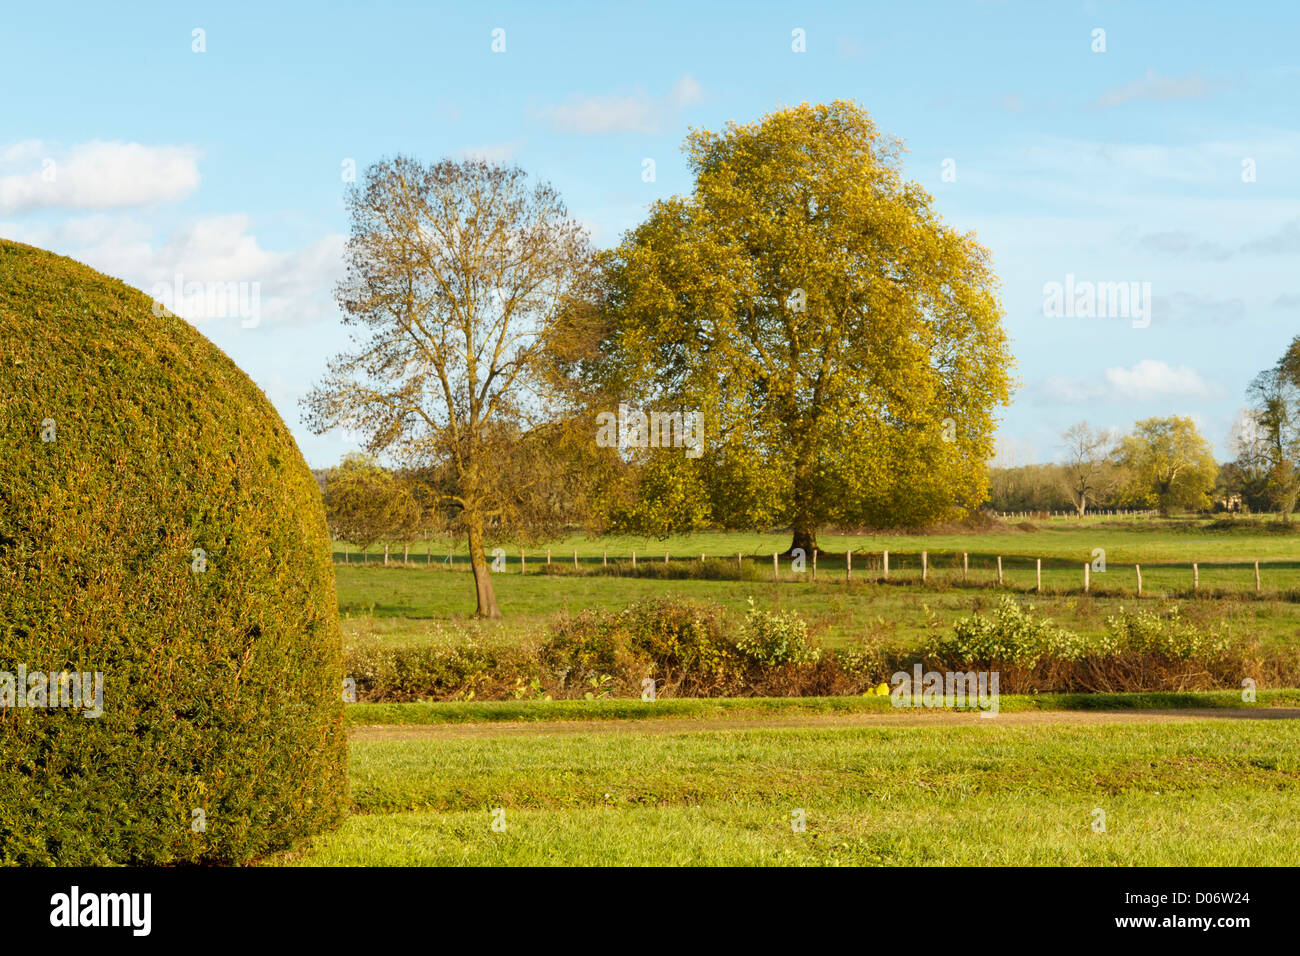 Topiary hedge in fields. - Stock Image